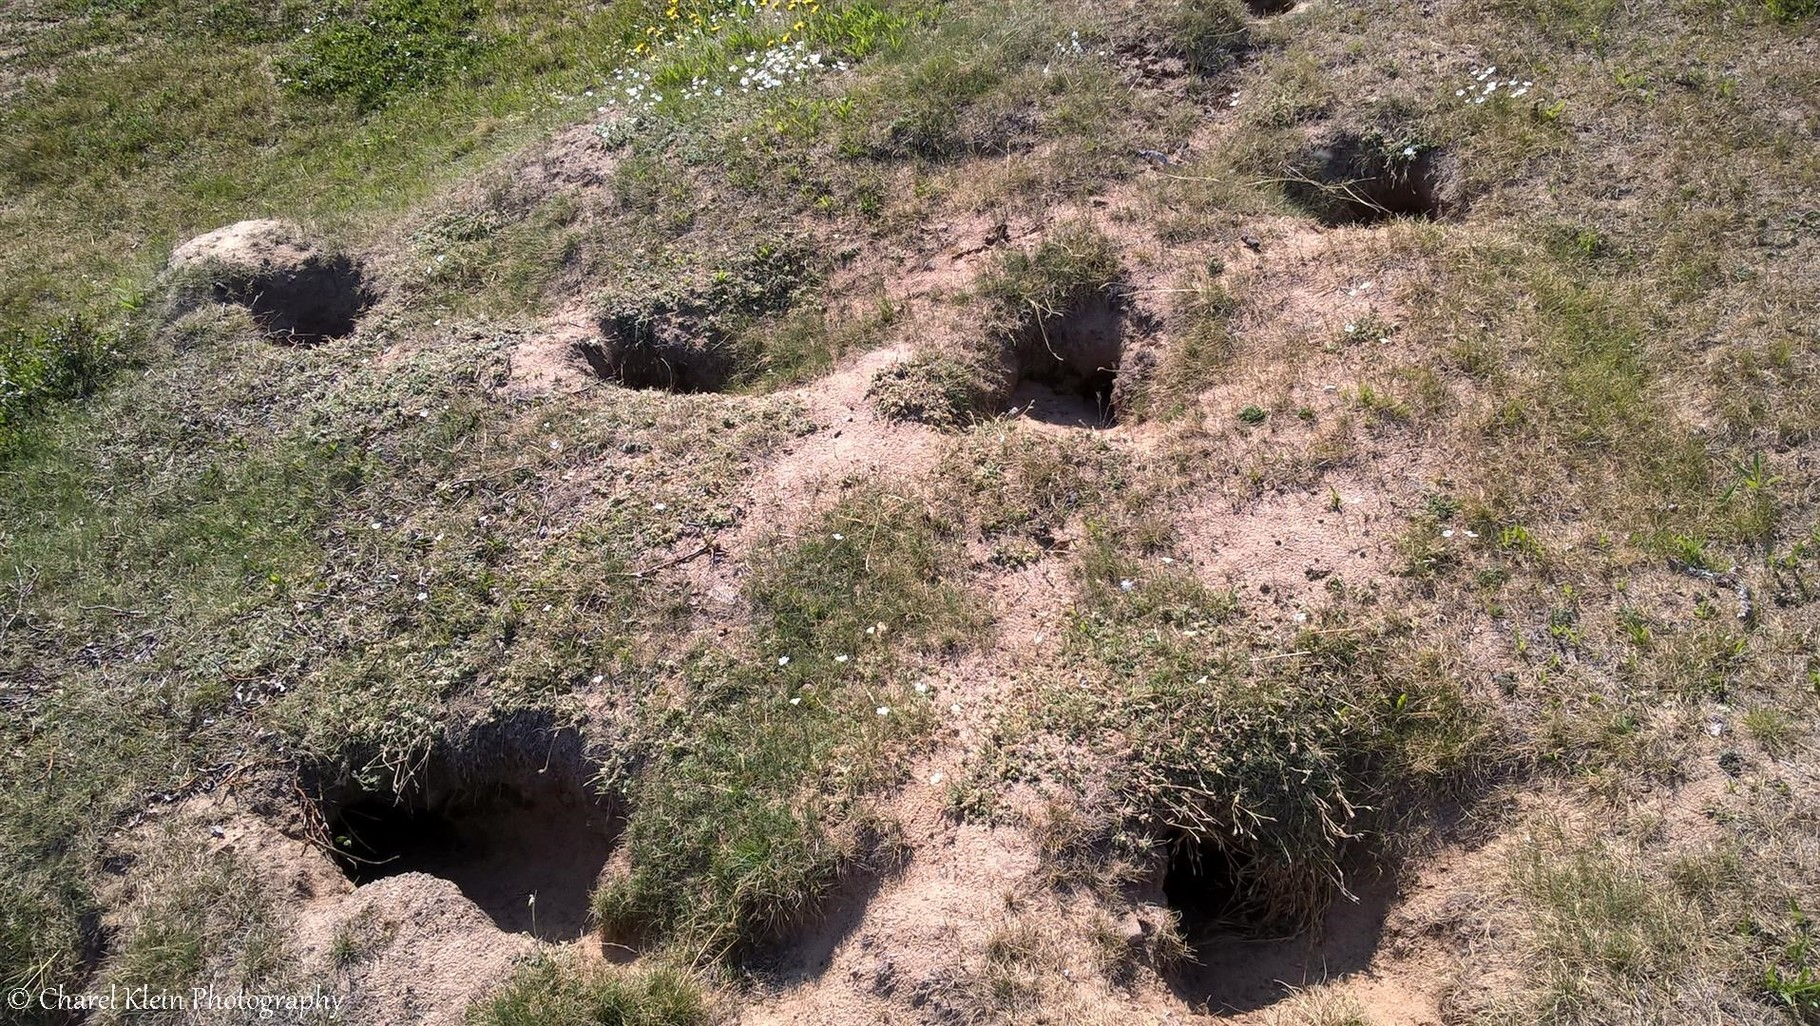 Arctic fox burrow